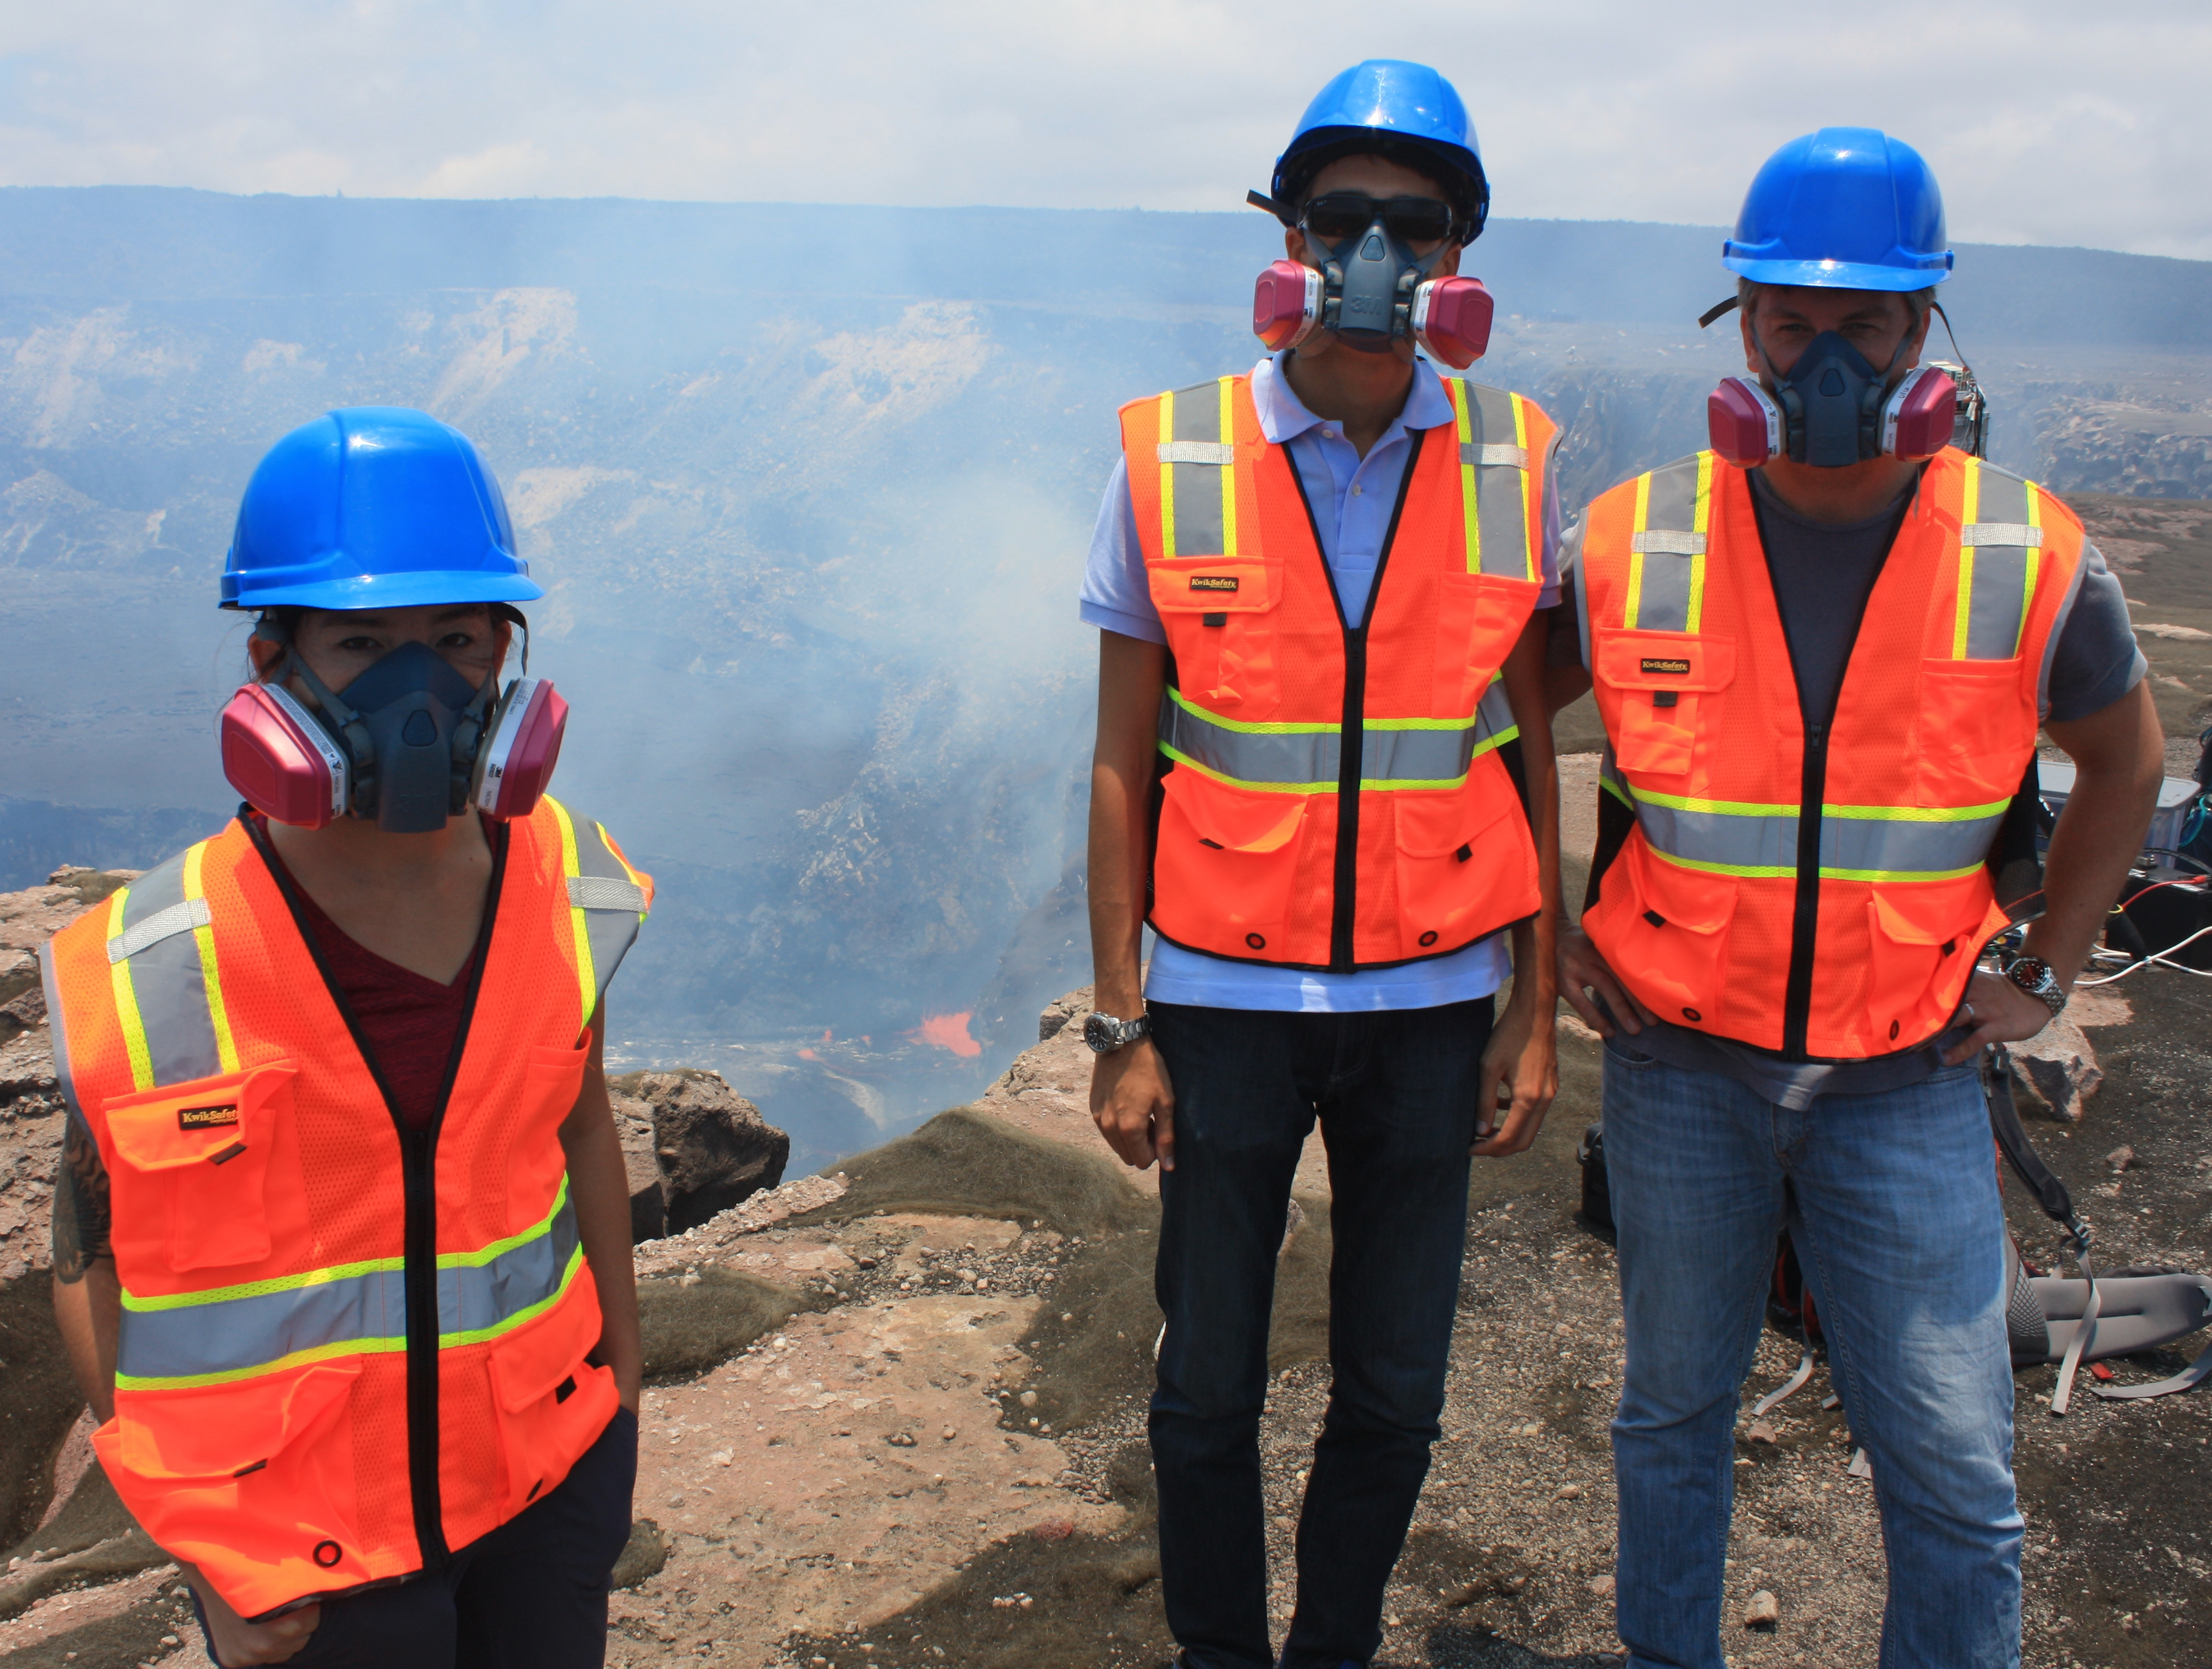 Dr. Wright and two colleagues near top of volcano in Hawaii